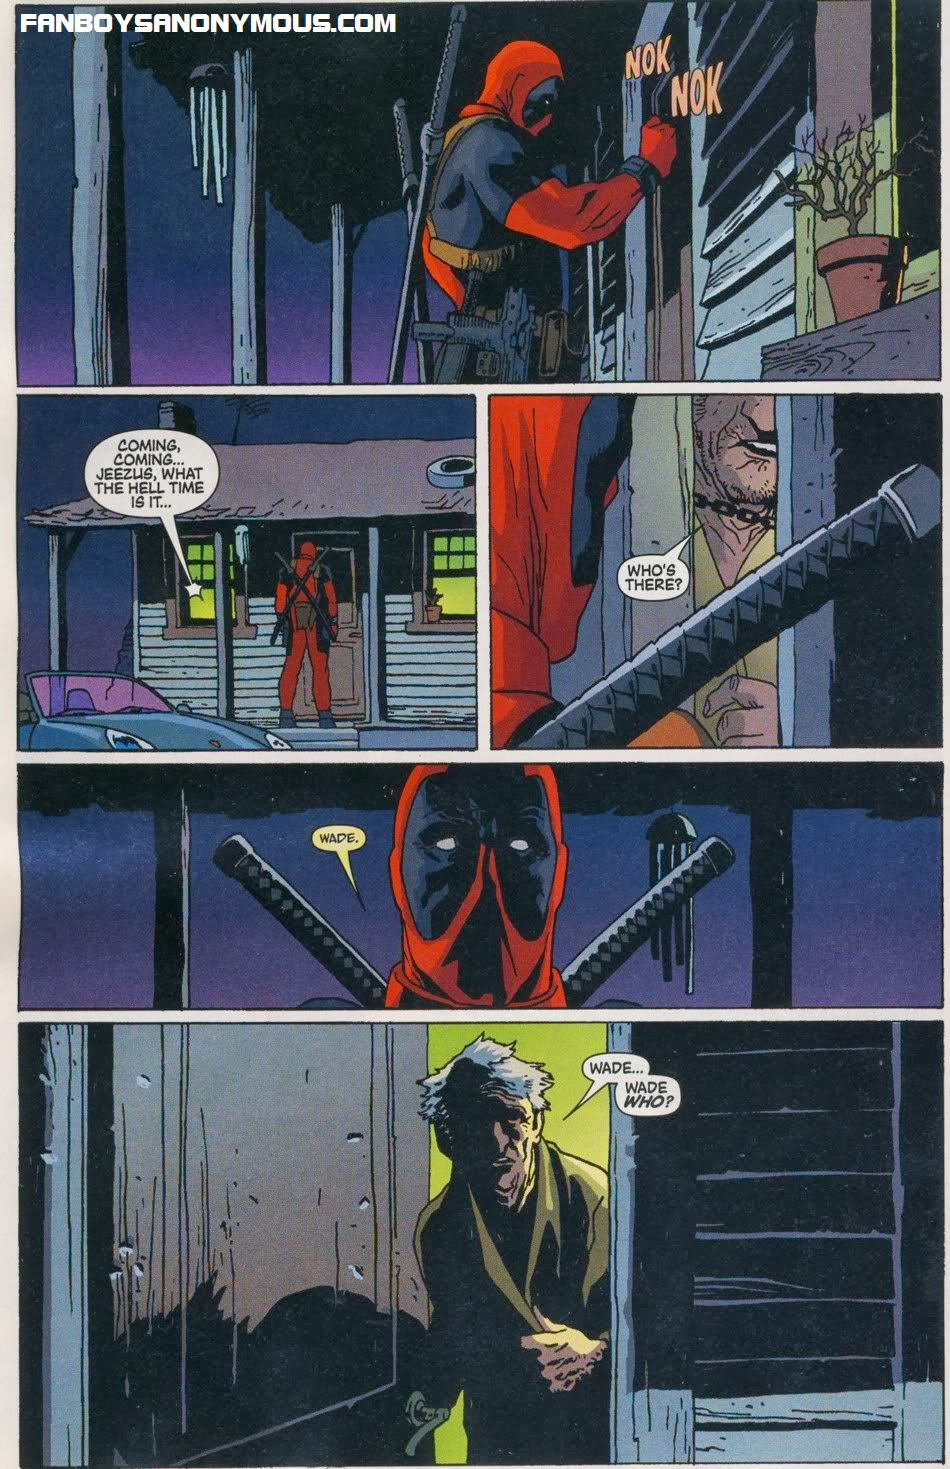 Deadpool searches for his dad